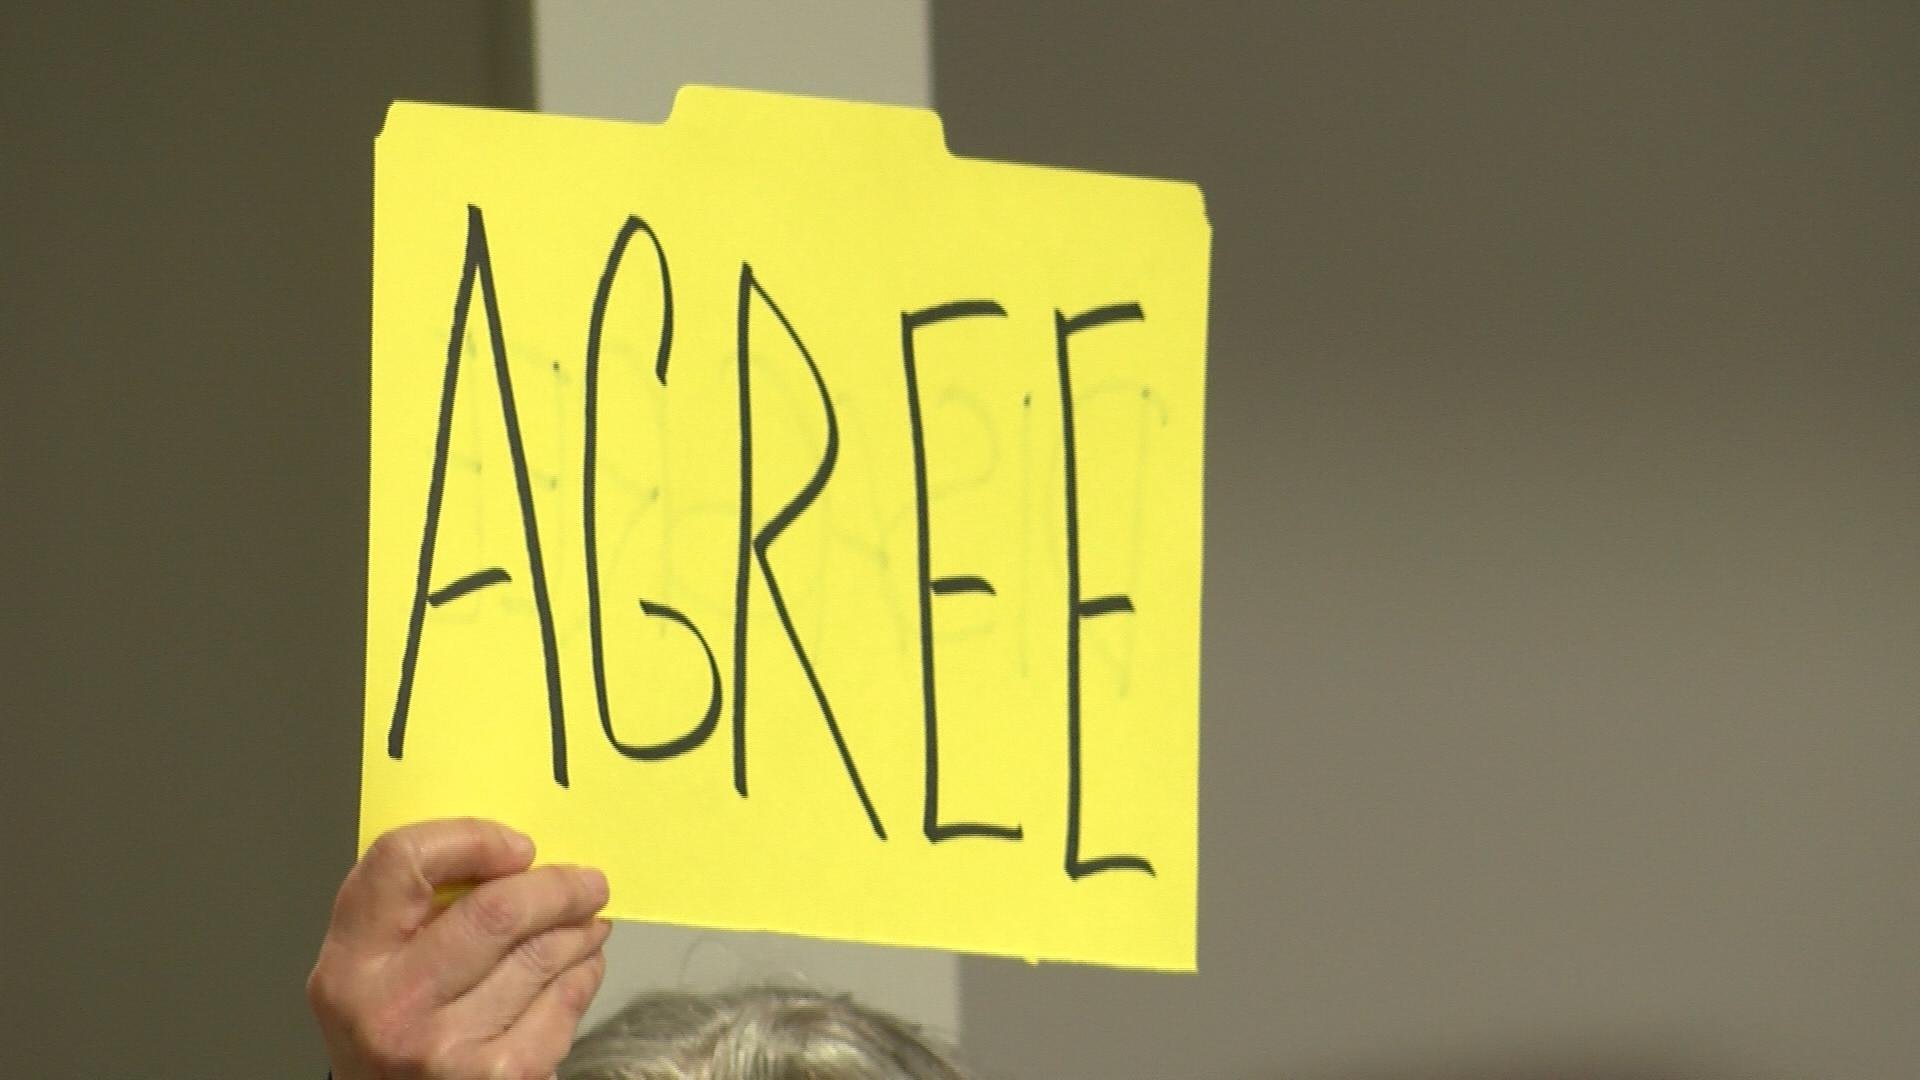 """Attendee holds up sign reading """"agree""""."""